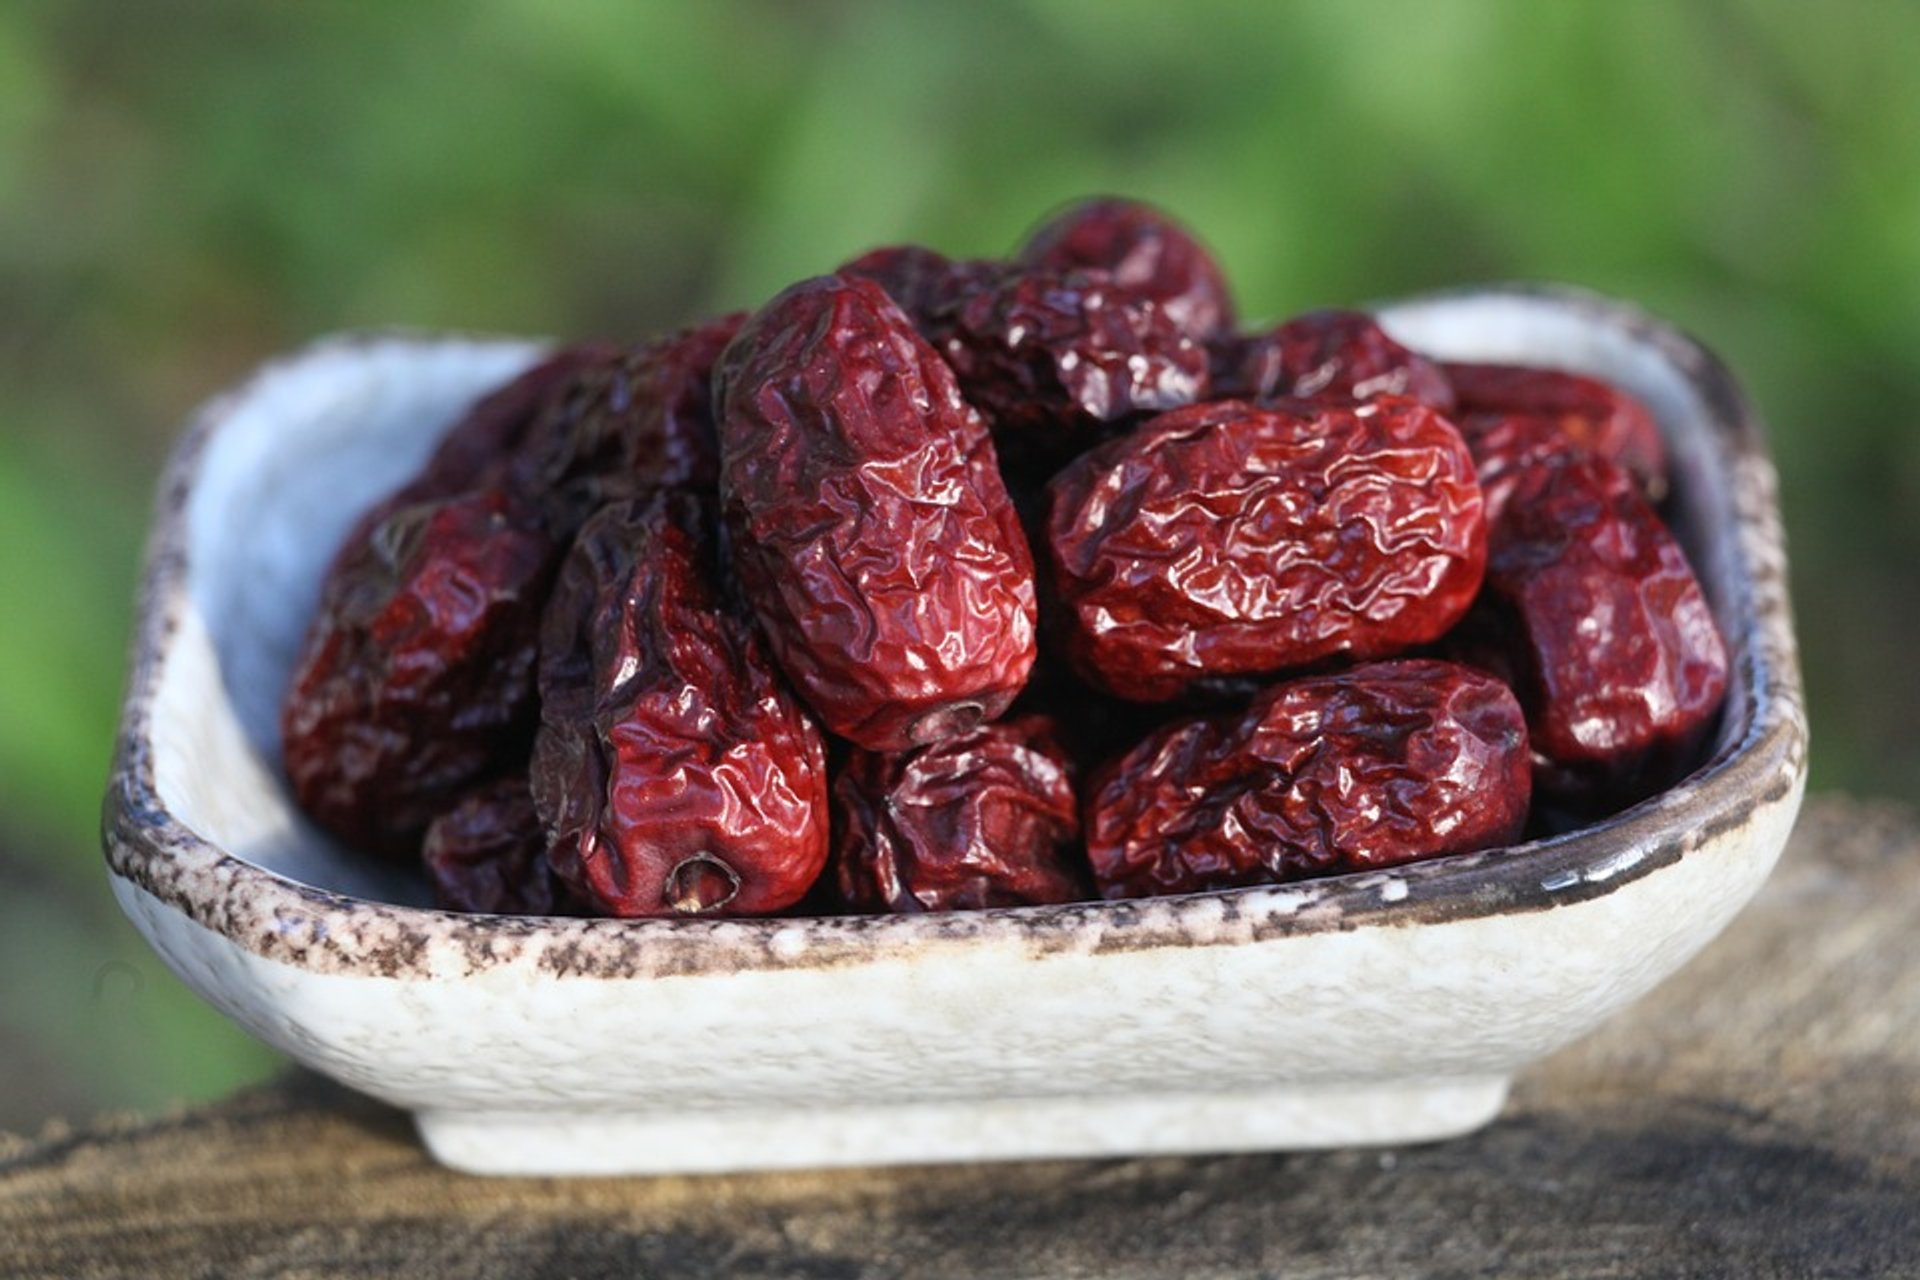 Dates Season in Jordan 2020 - Best Time